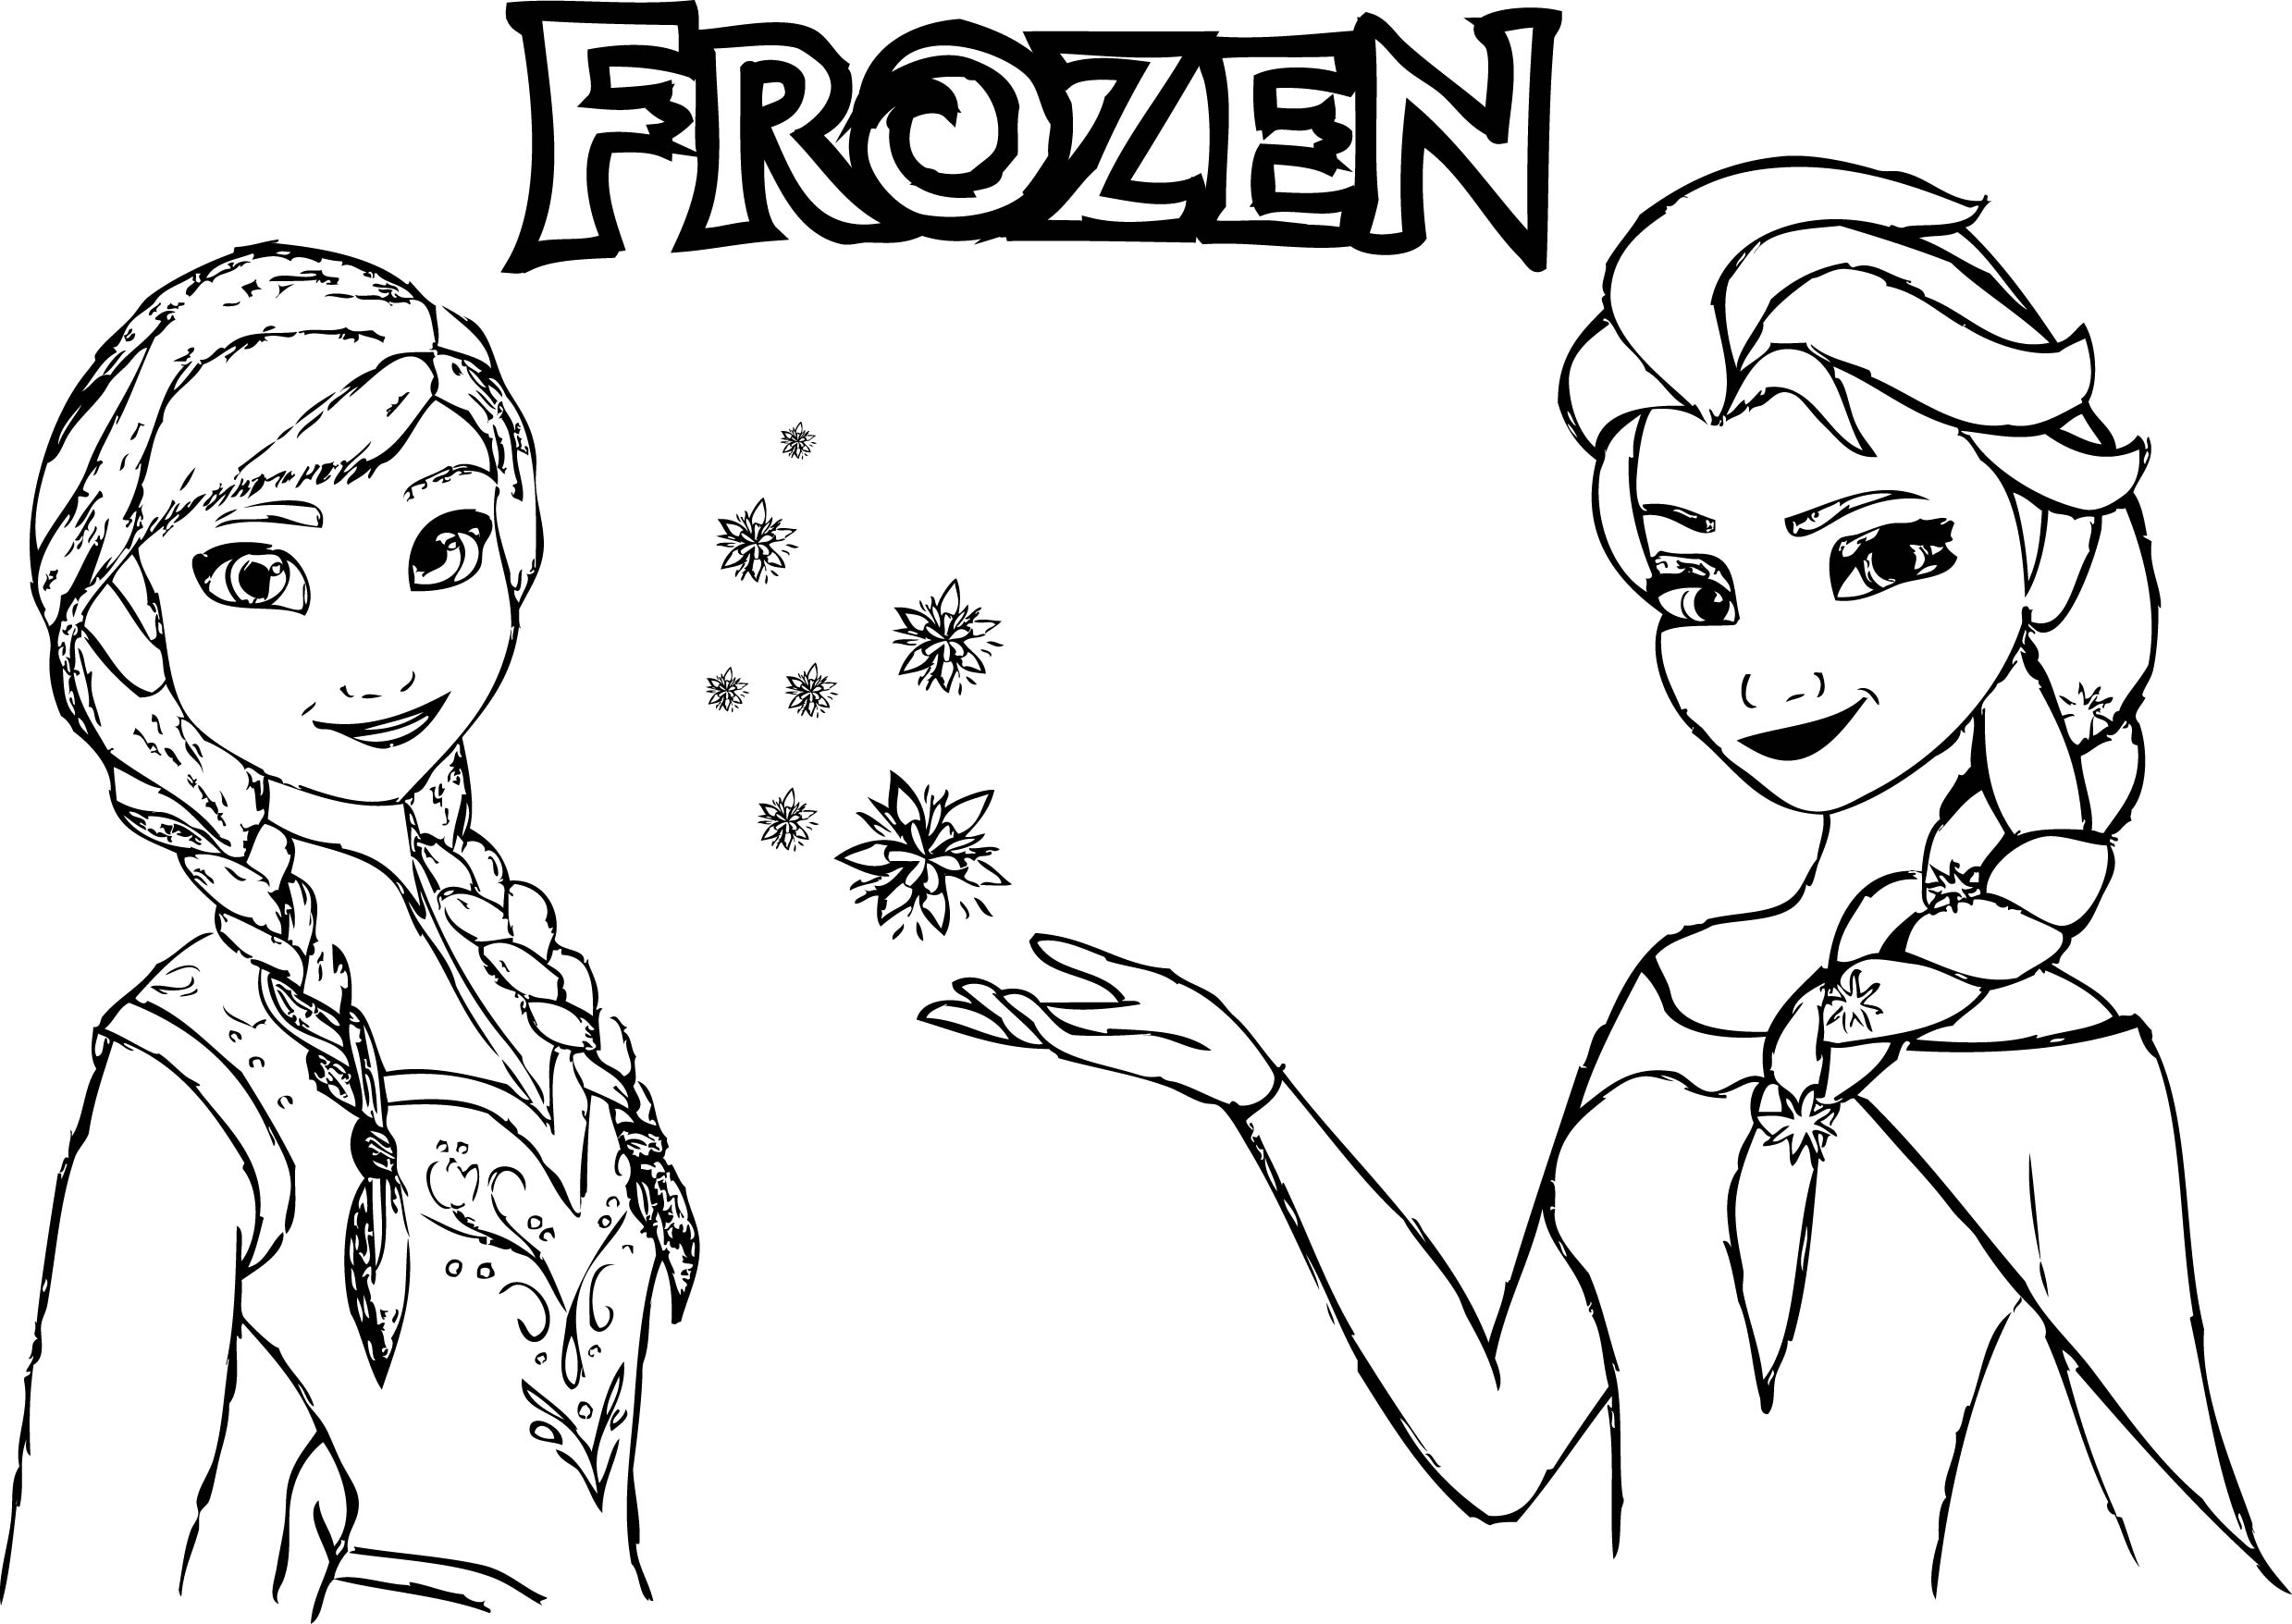 kids christmas coloring pages frozen - photo#31